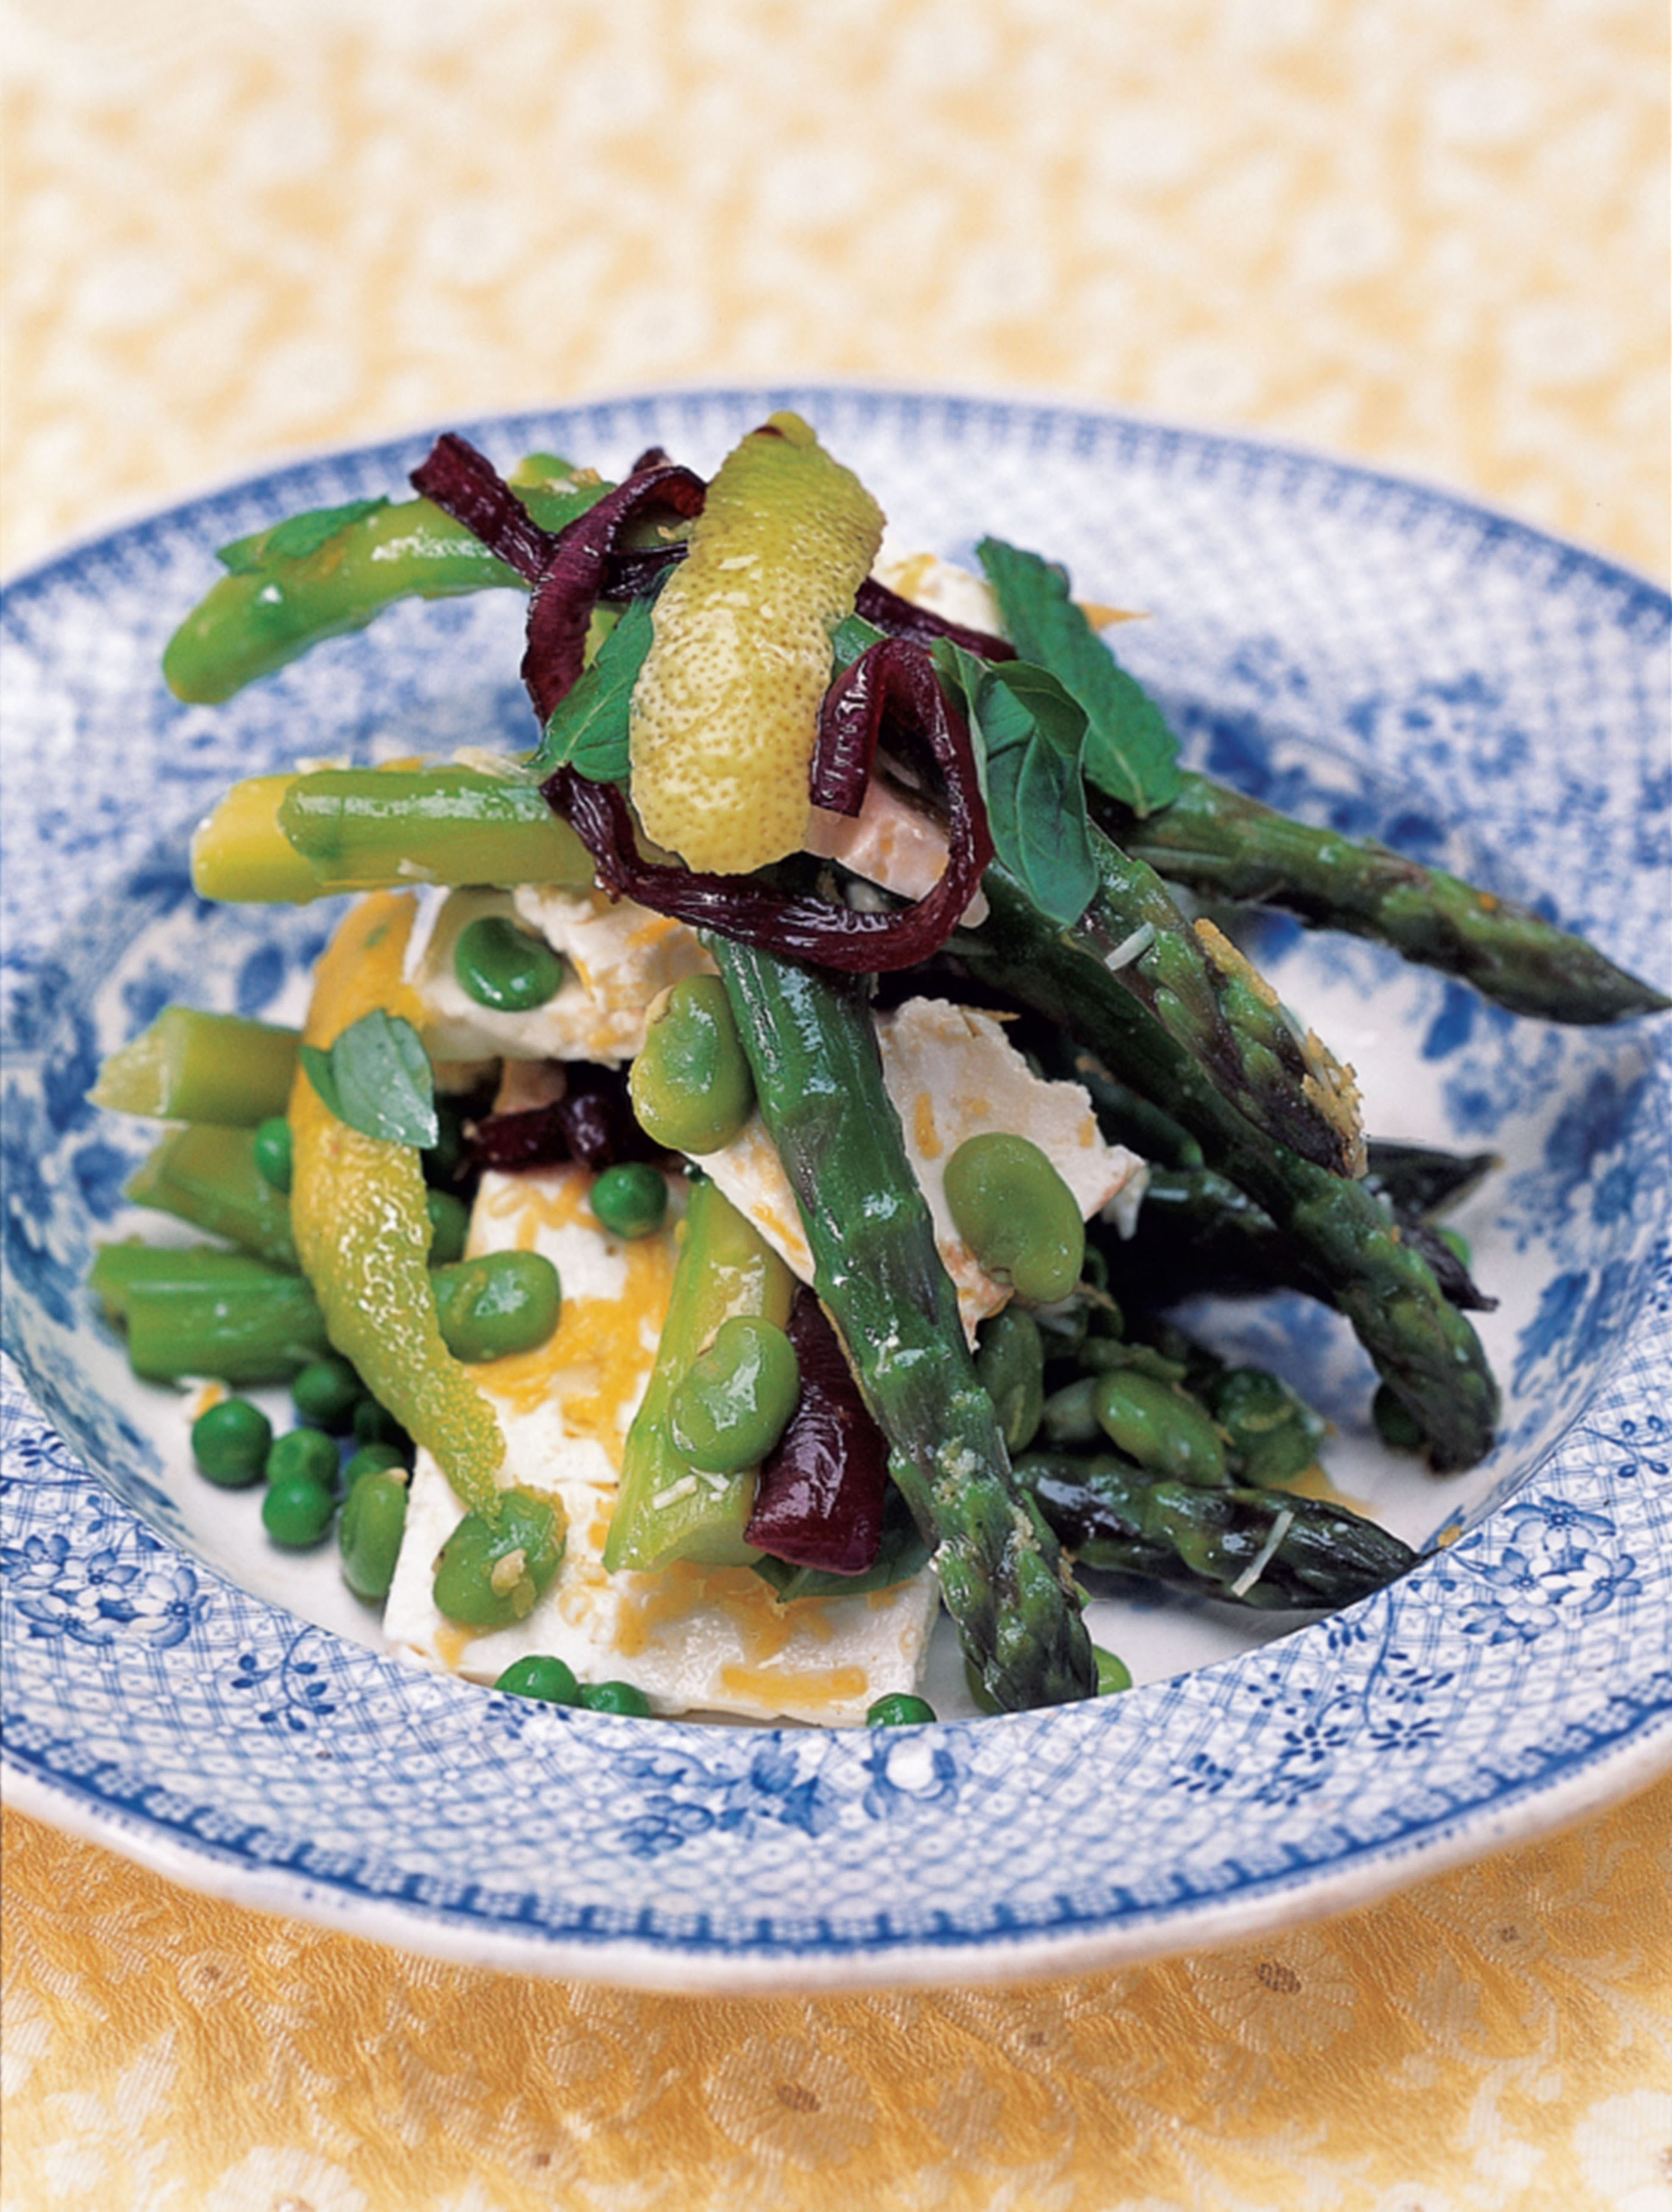 Salad of spring vegetables with herbs, pecorino and lemon-infused oil